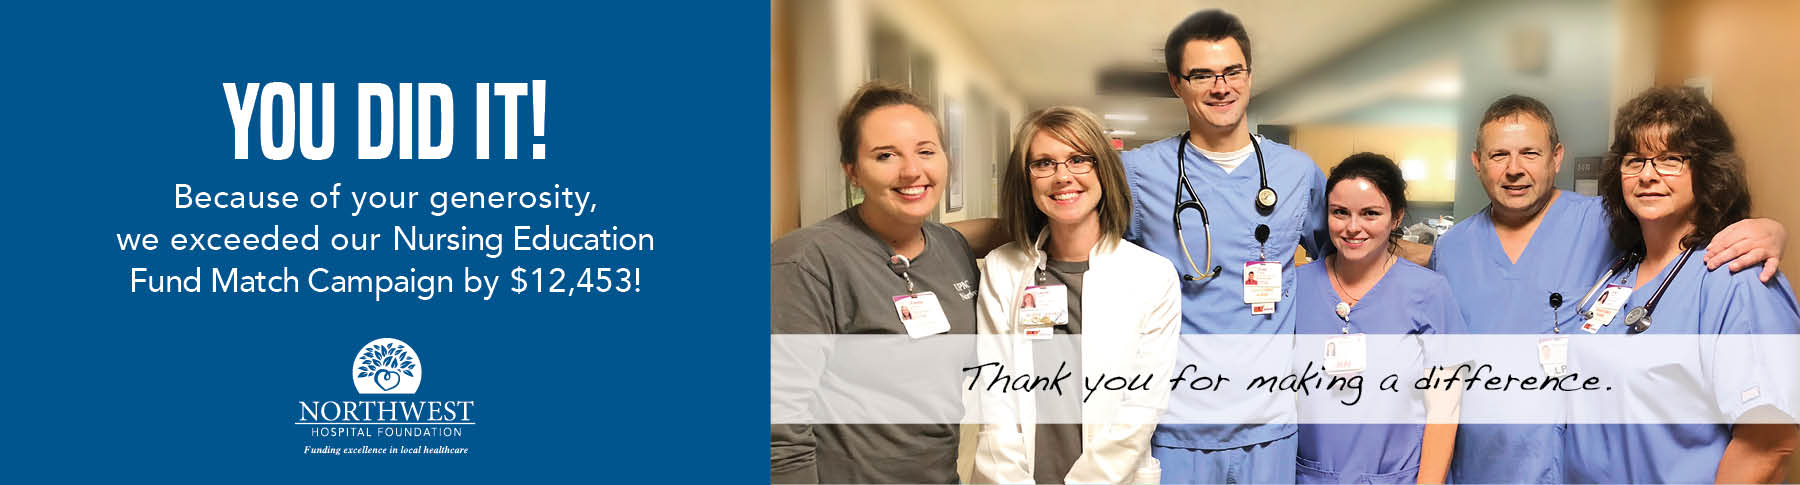 2018 Nursing Education Fund Match Campaign Success!